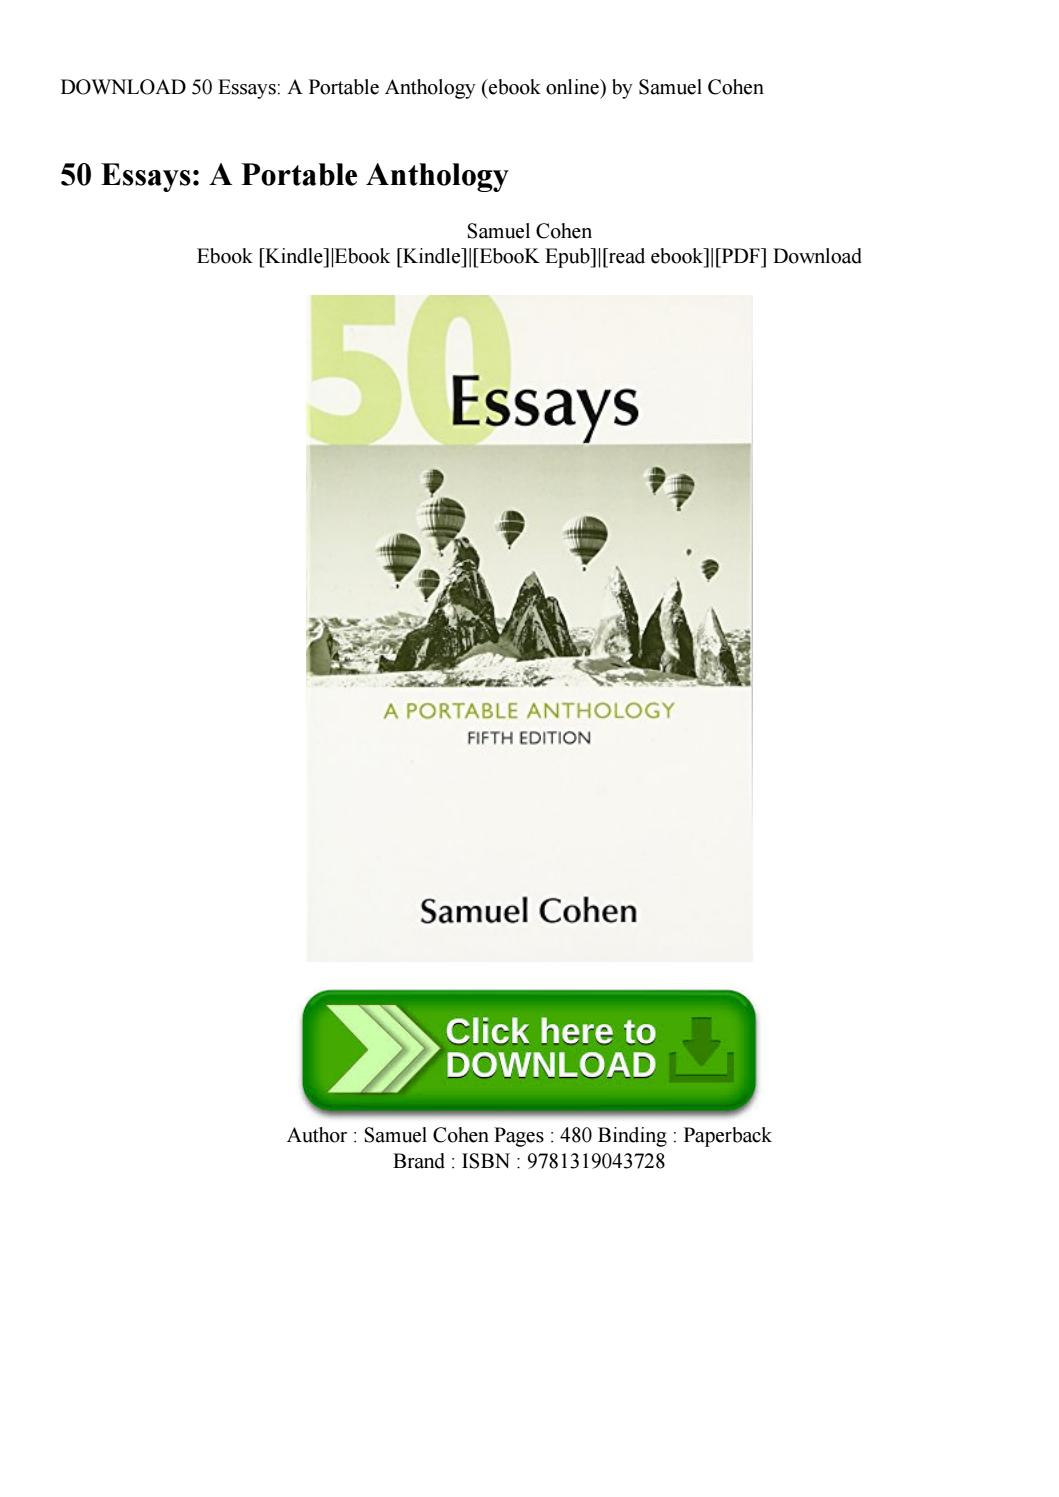 50 great essays cohen